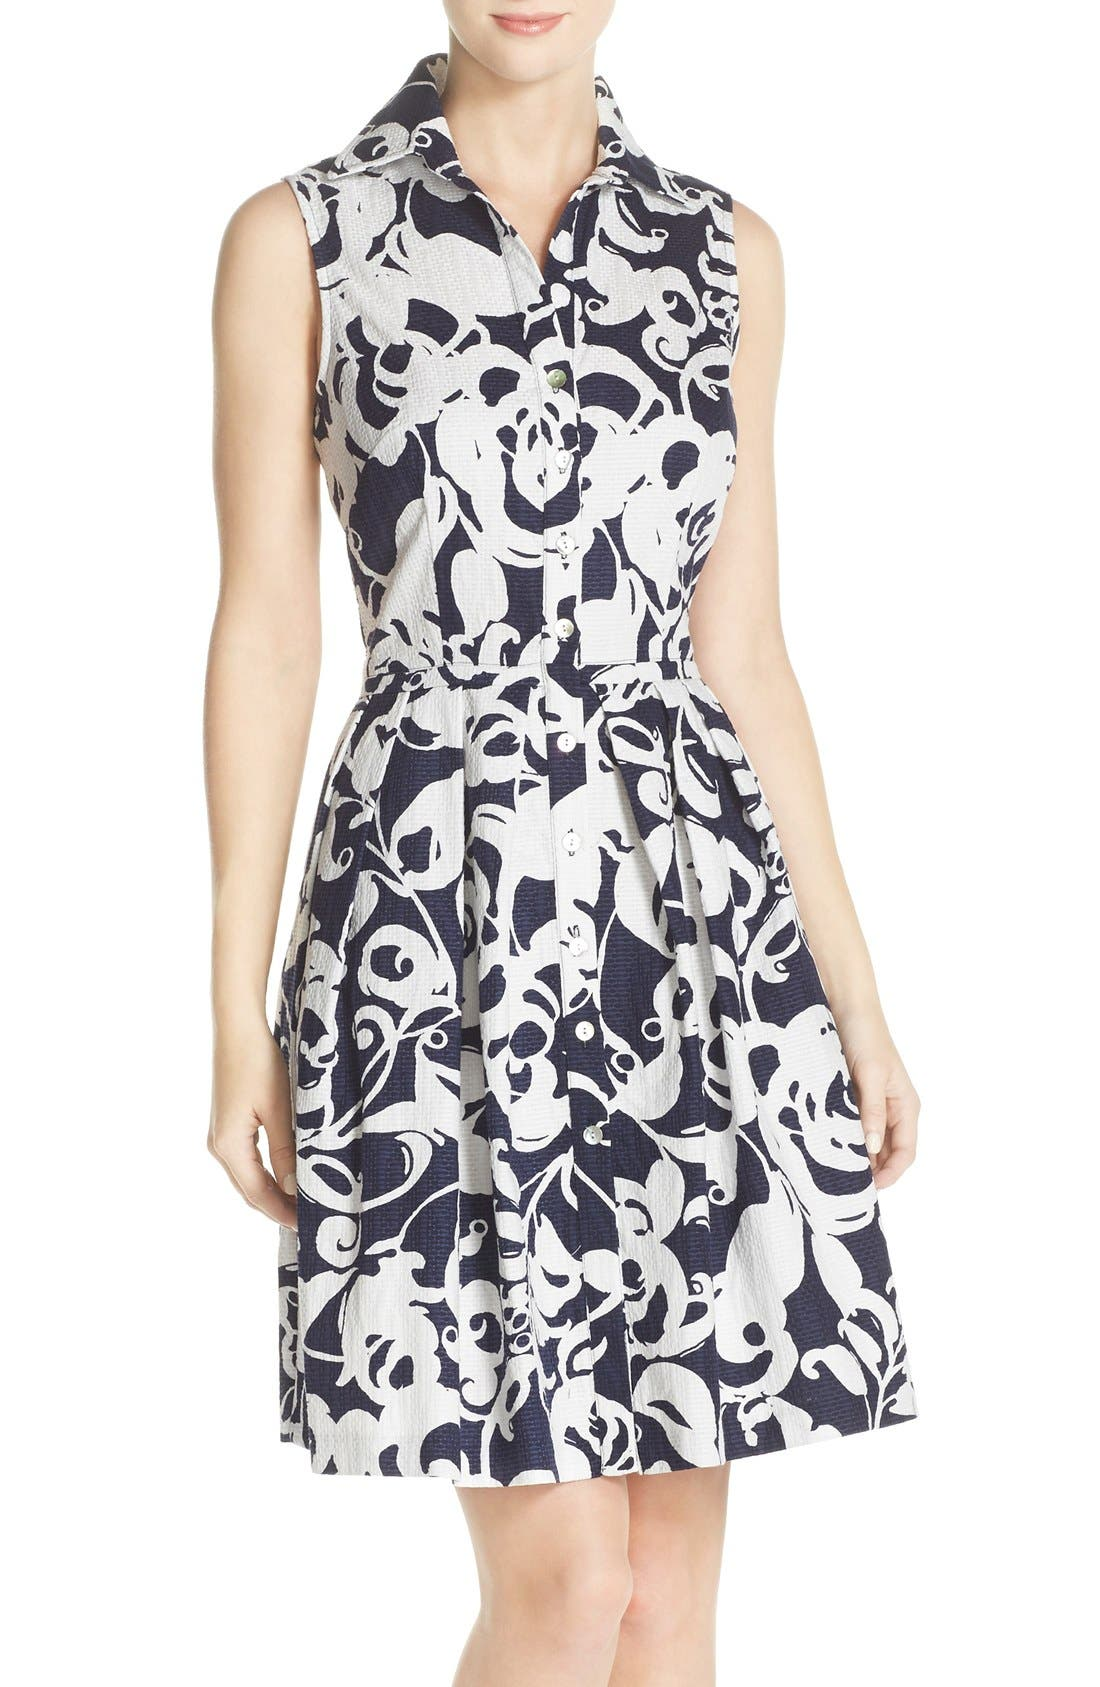 Alternate Image 1 Selected - Taylor Dresses Print Jacquard Fit & Flare Shirtdress